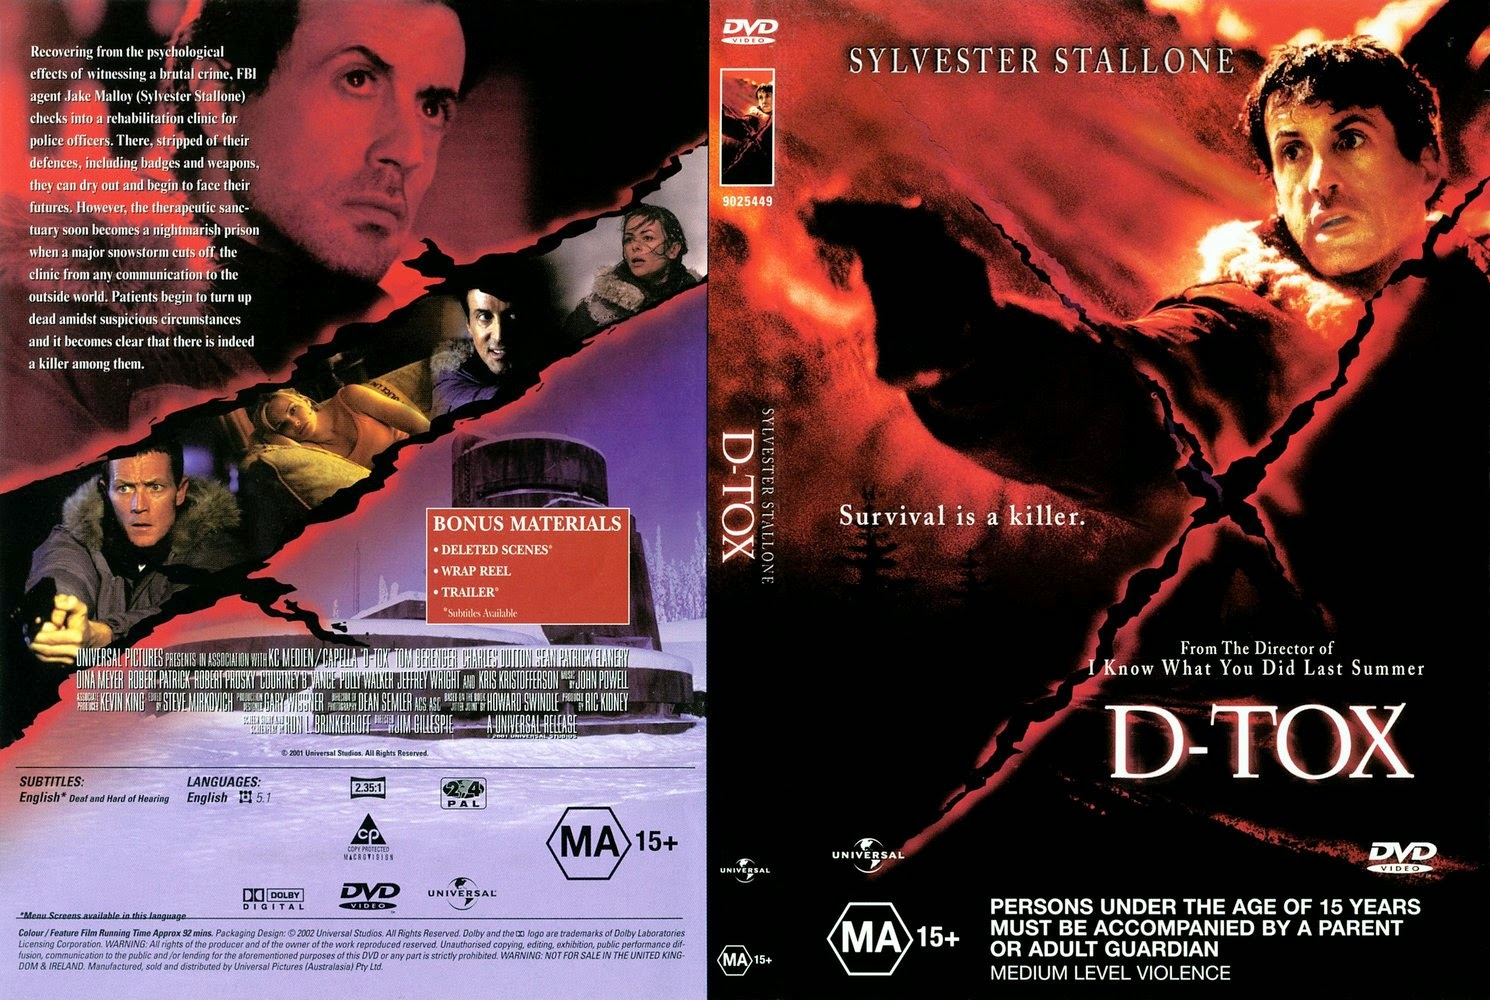 D-Tox (Also known as Eye See You) - Released in 2002 - Starring Sylvester Stallone, Tom Berenger, Charles S. Dutton, Robert Patrick